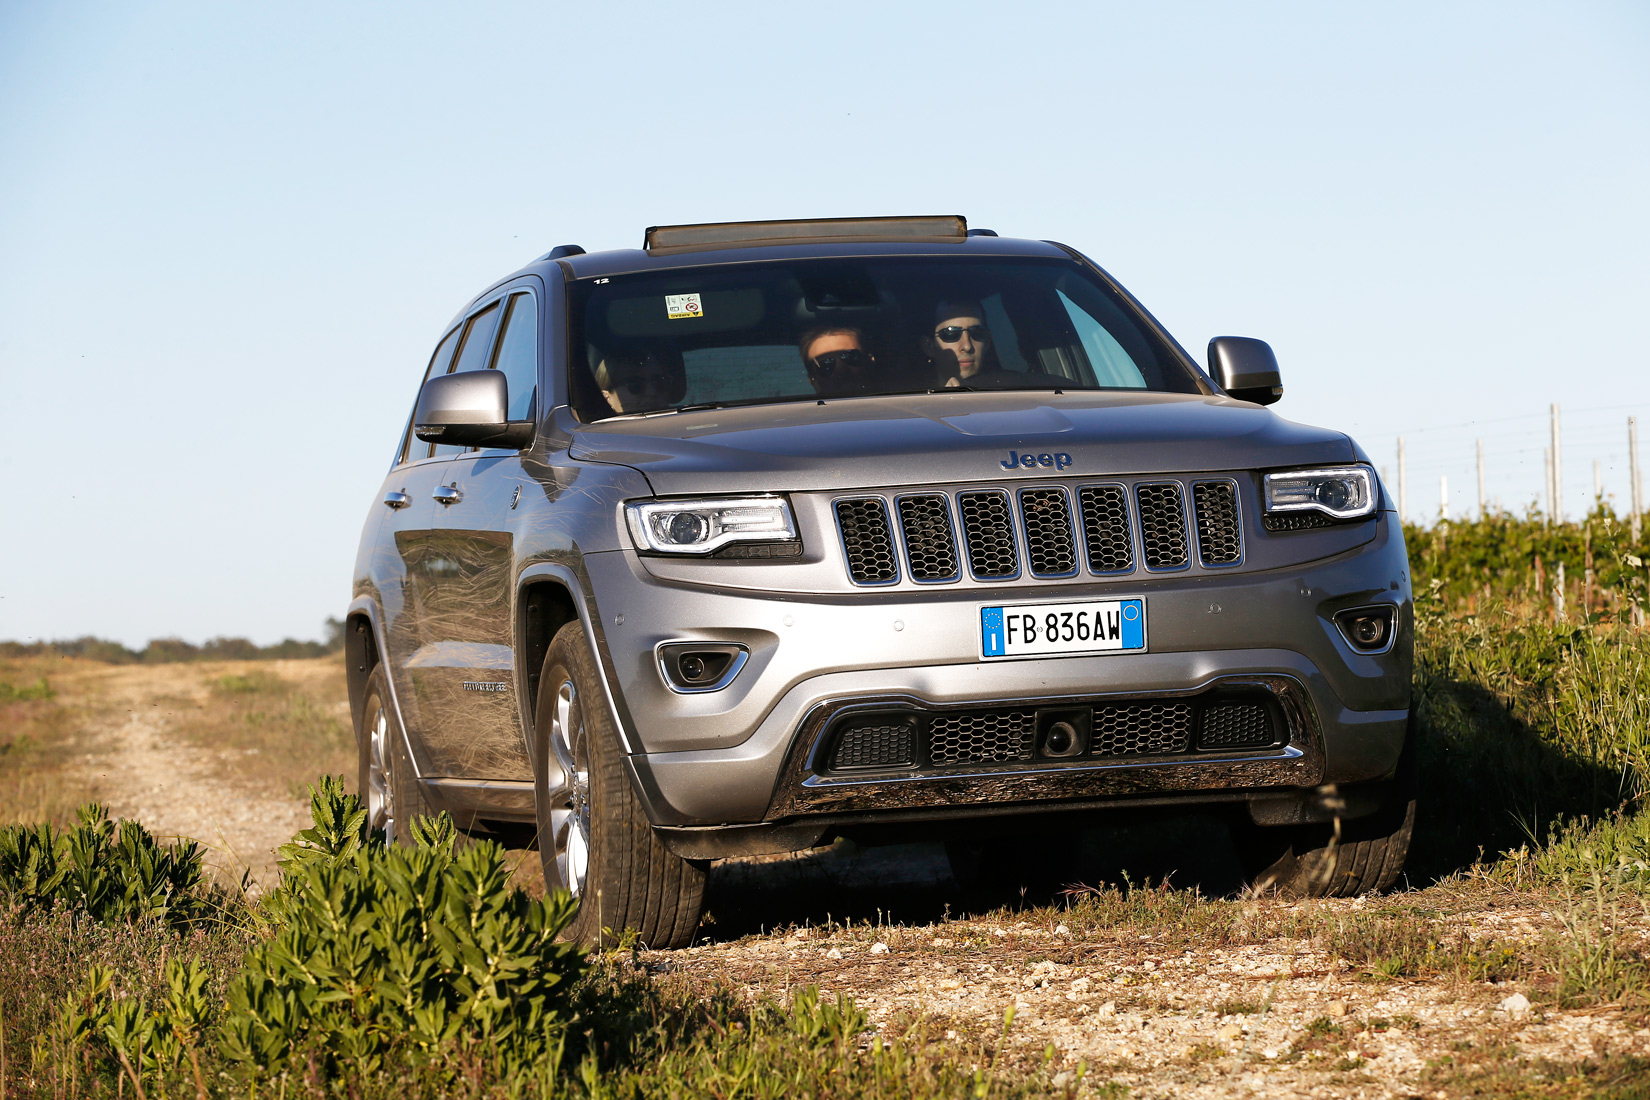 Simon Wittenberg ventures on and off-road in St.Tropez to try out Jeep's latest luxury SUV, the Grand Cherokee 3.0 V6 CRD Overland